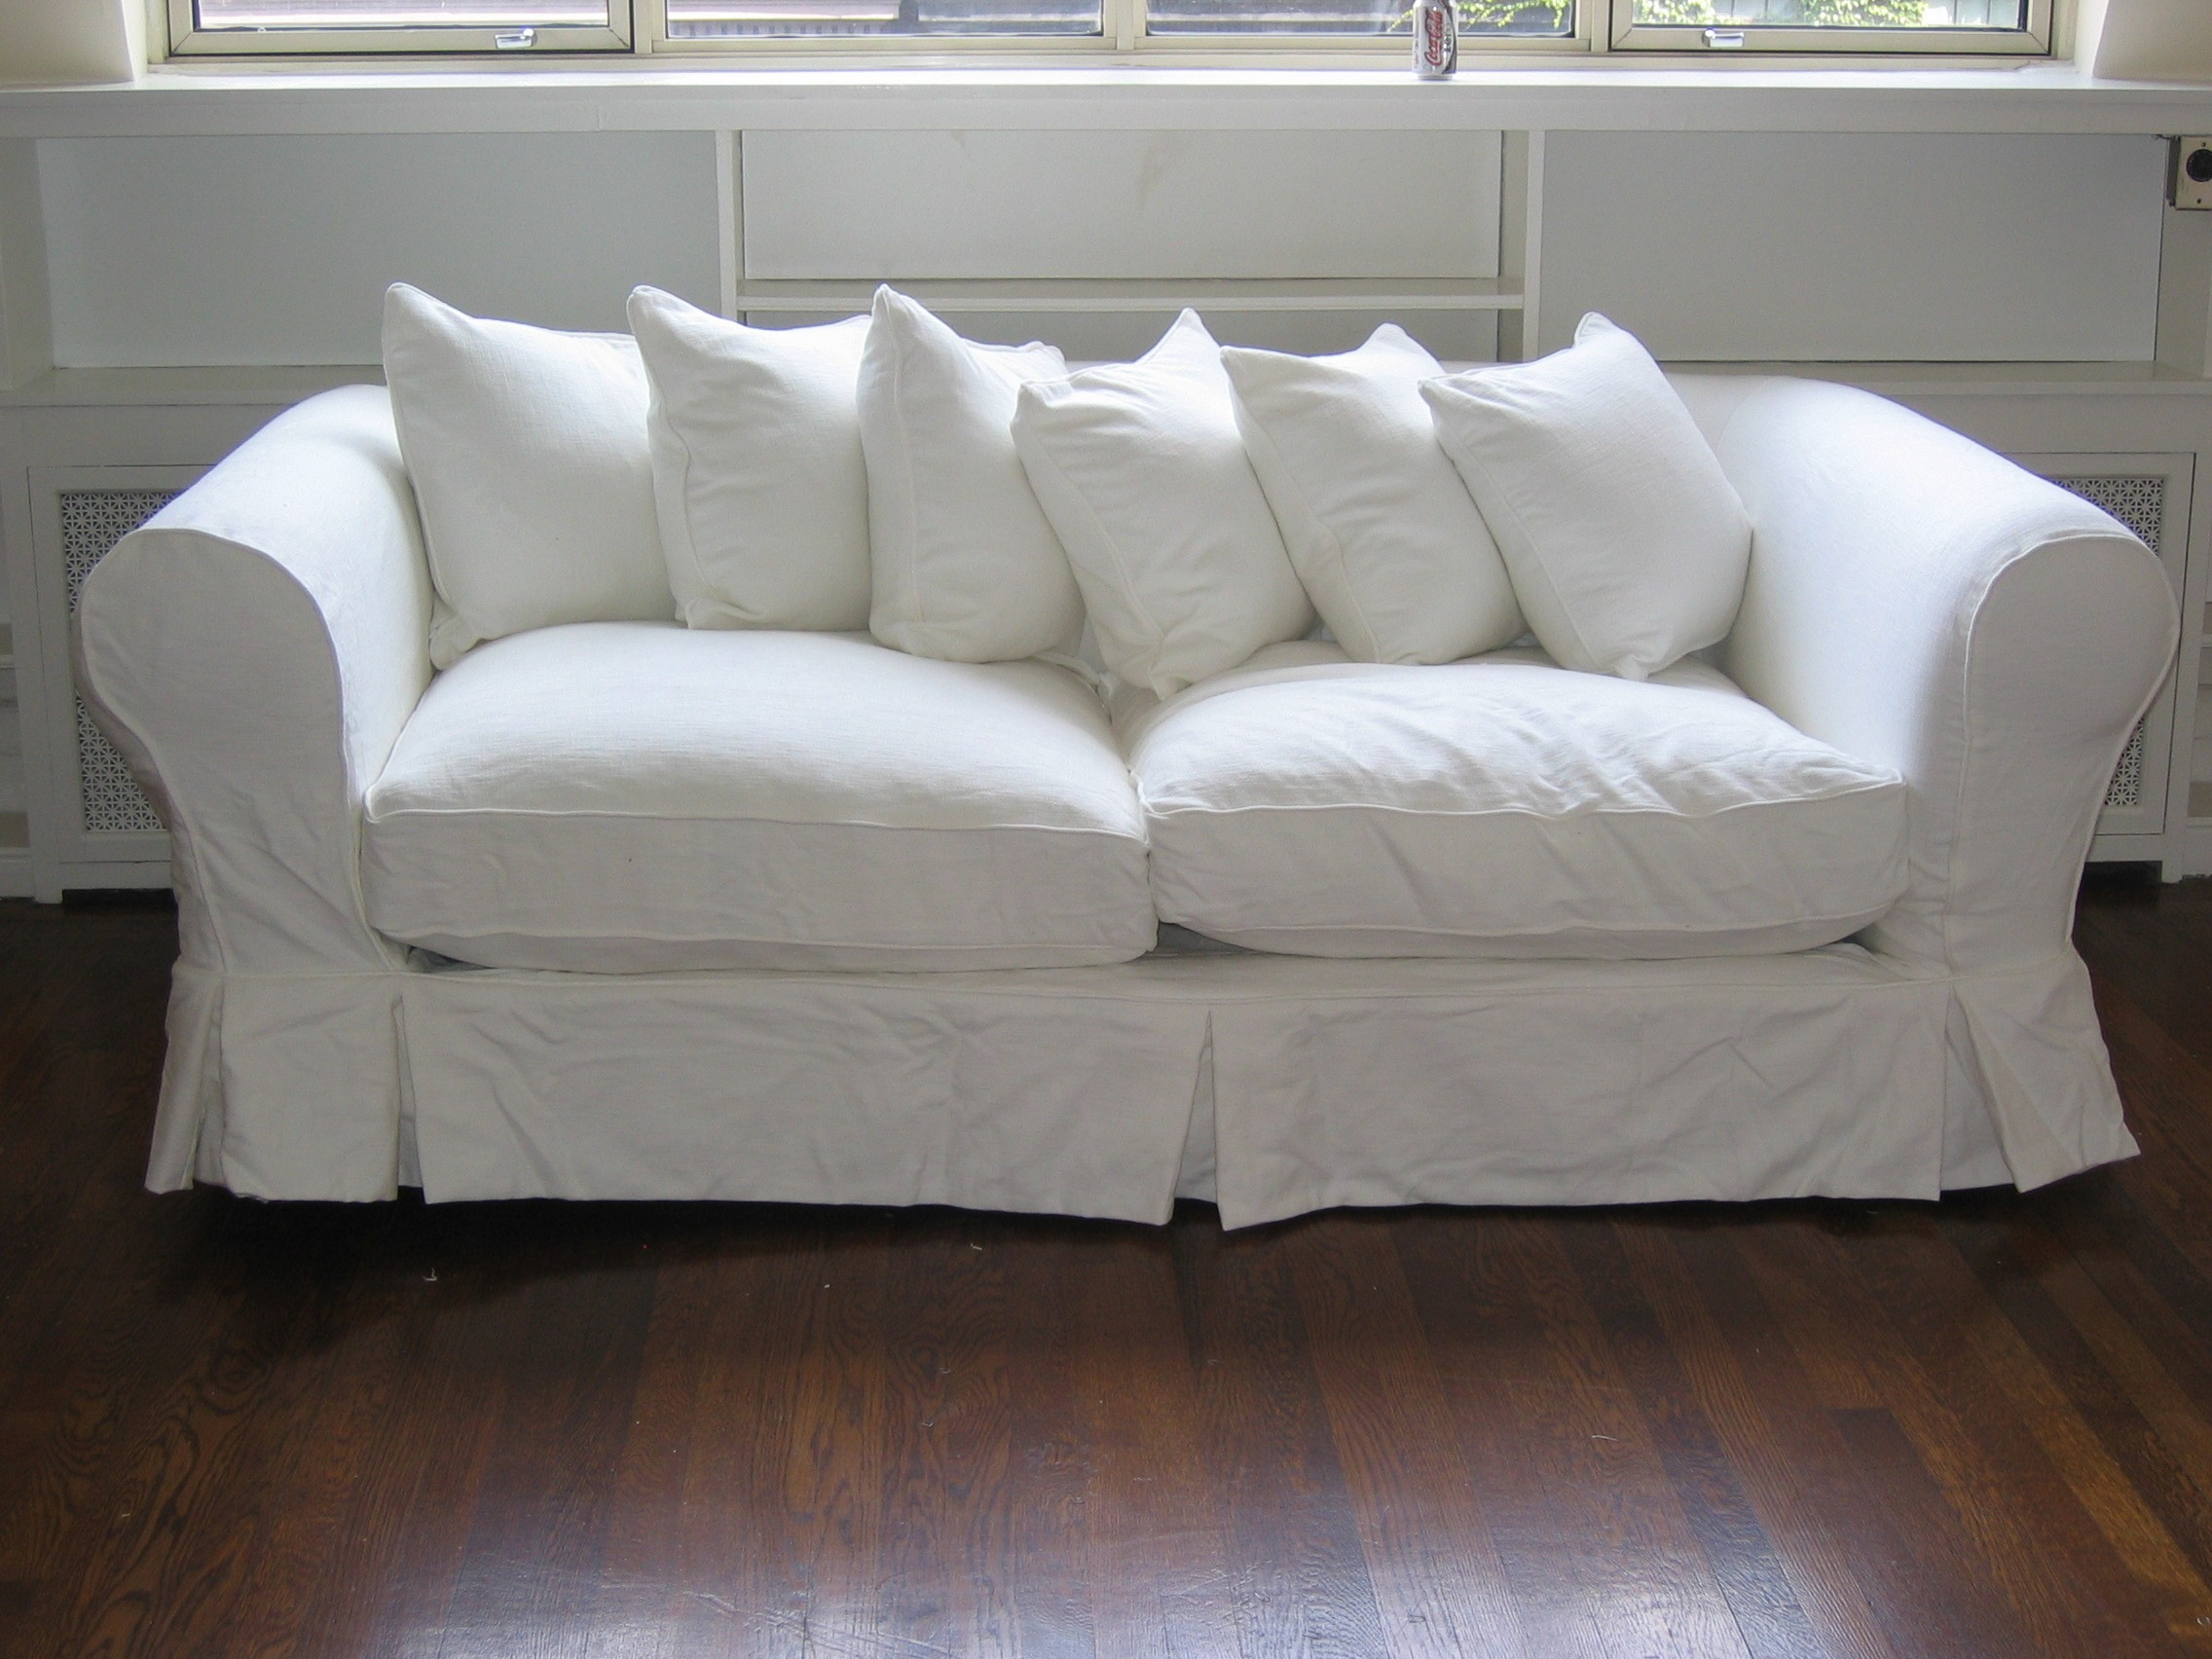 Couches and sofas top Cheap sofas and Couches Picture